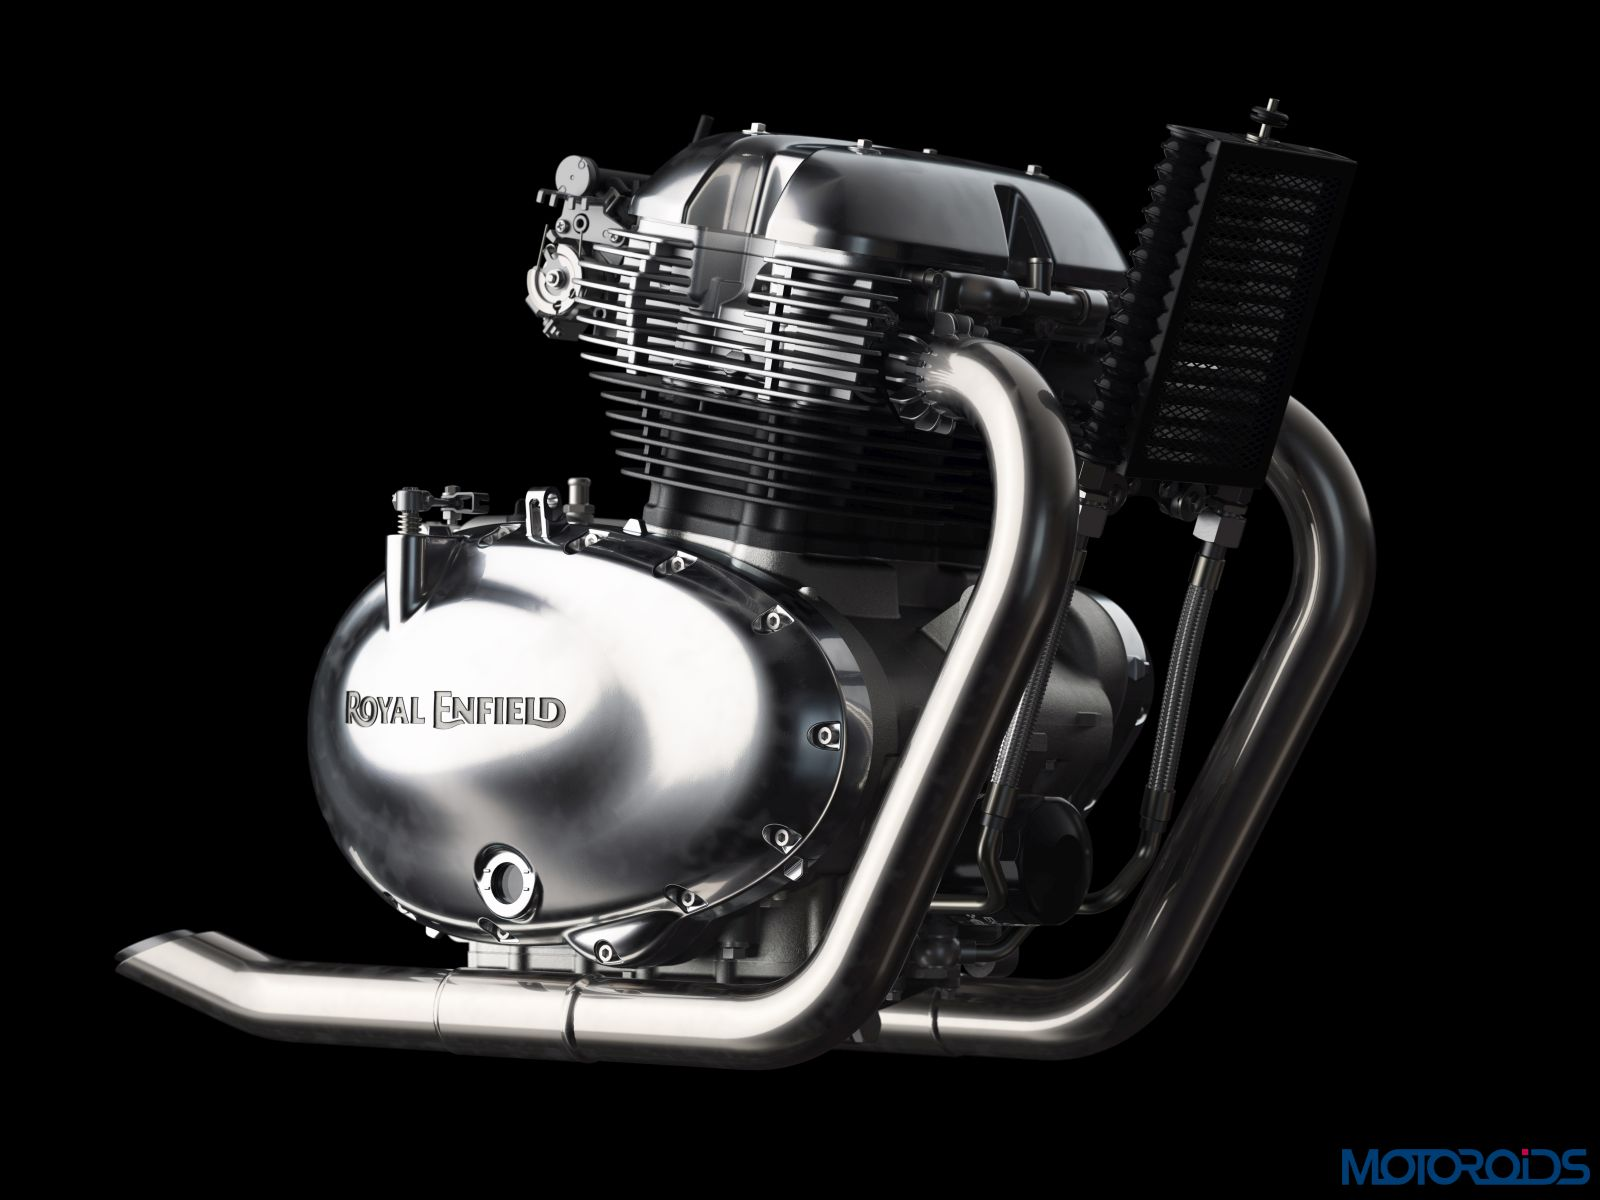 Royal-Enfield-648cc-Twin-Engine-RHS-view